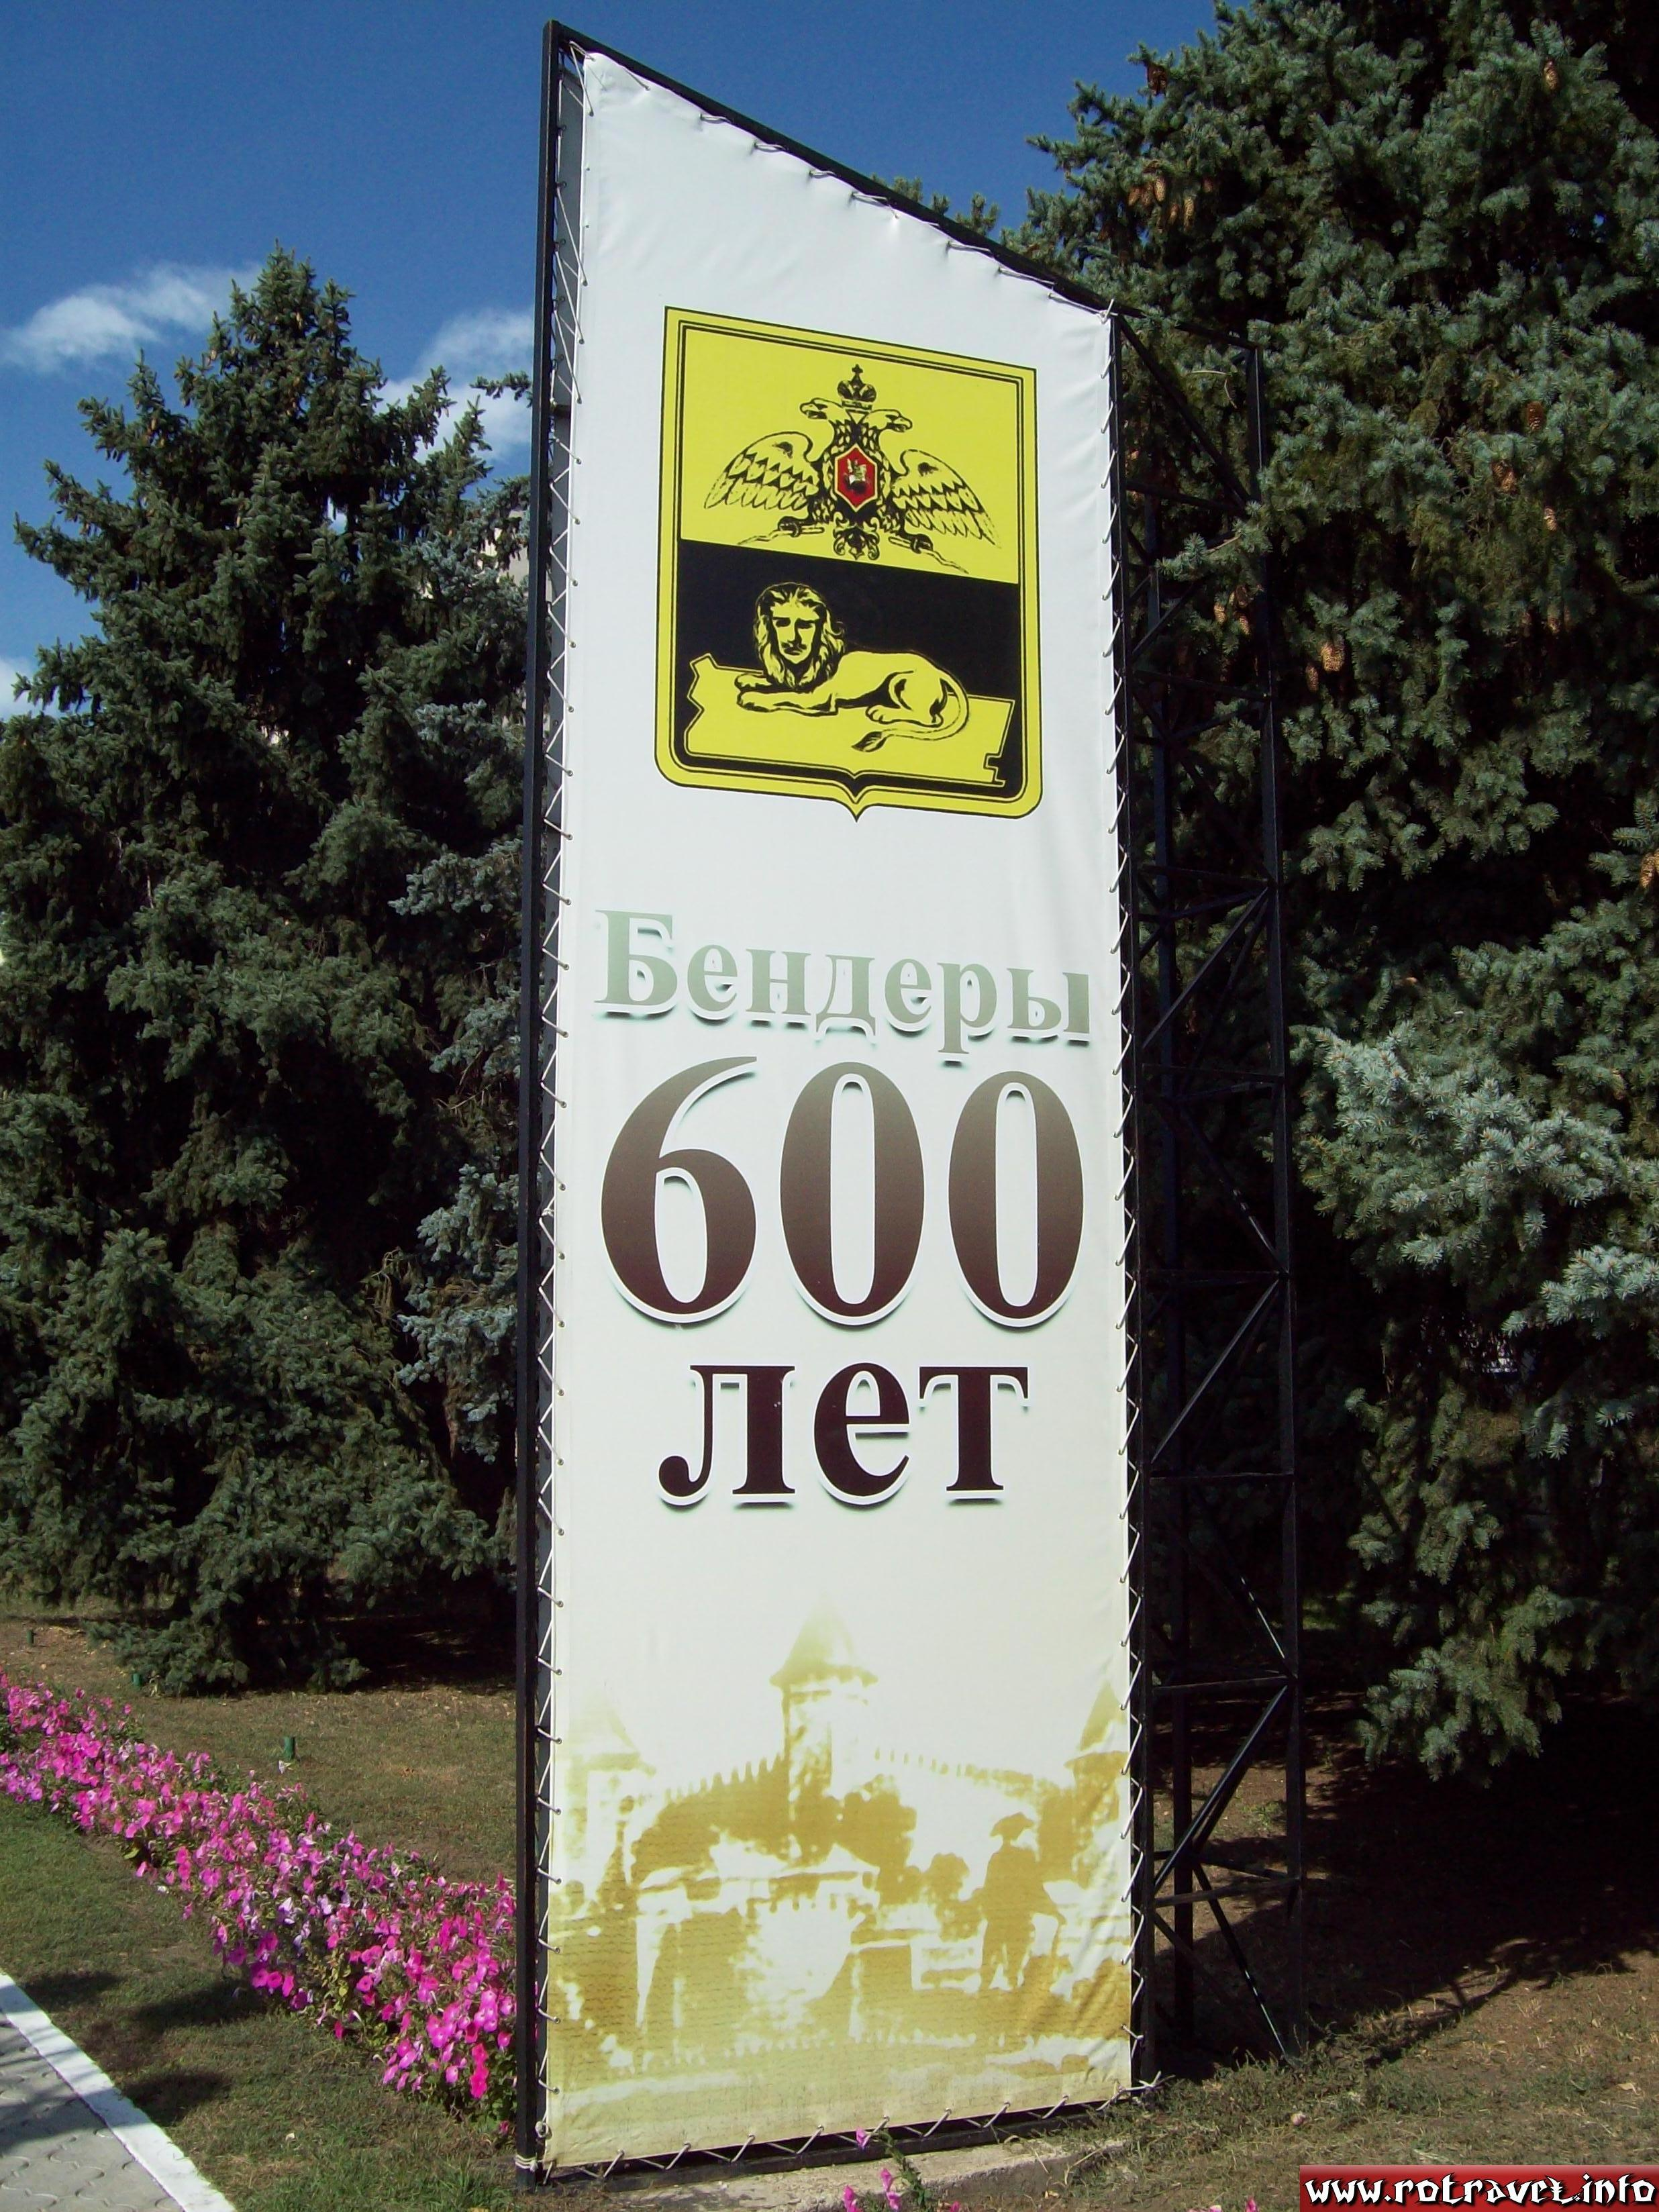 Last year, Tighina celebrate 600 years of history (1408-2008)